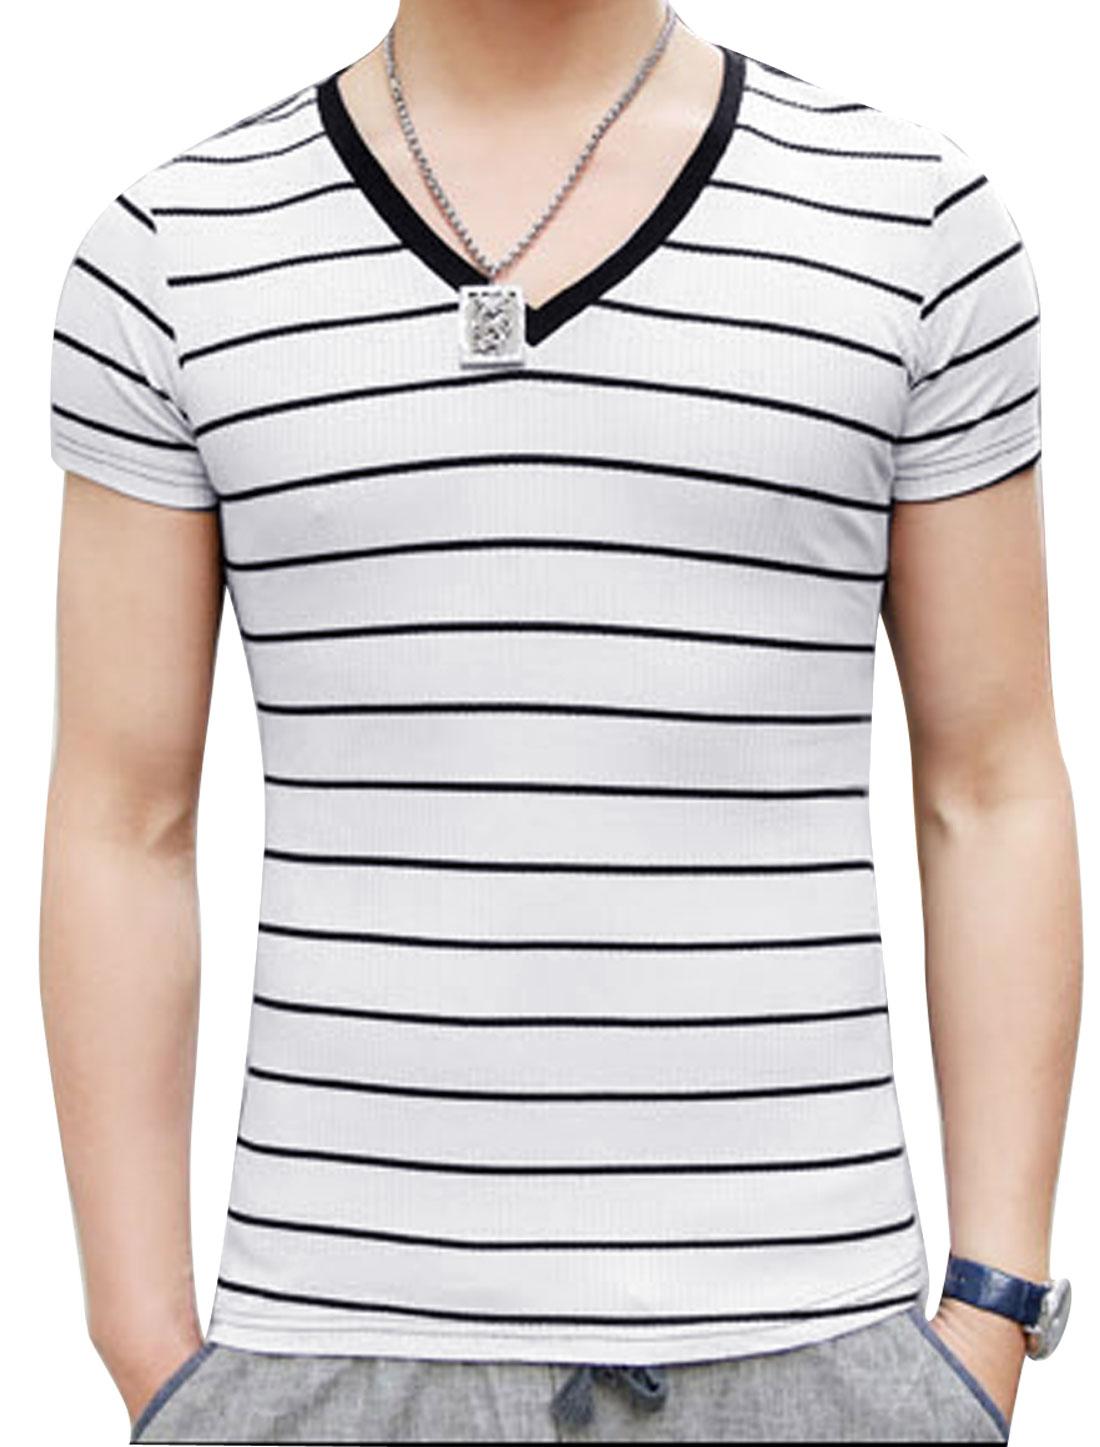 Men V Neck Stripes Rib Knit Splicing Stylish Tee Shirt Black White S